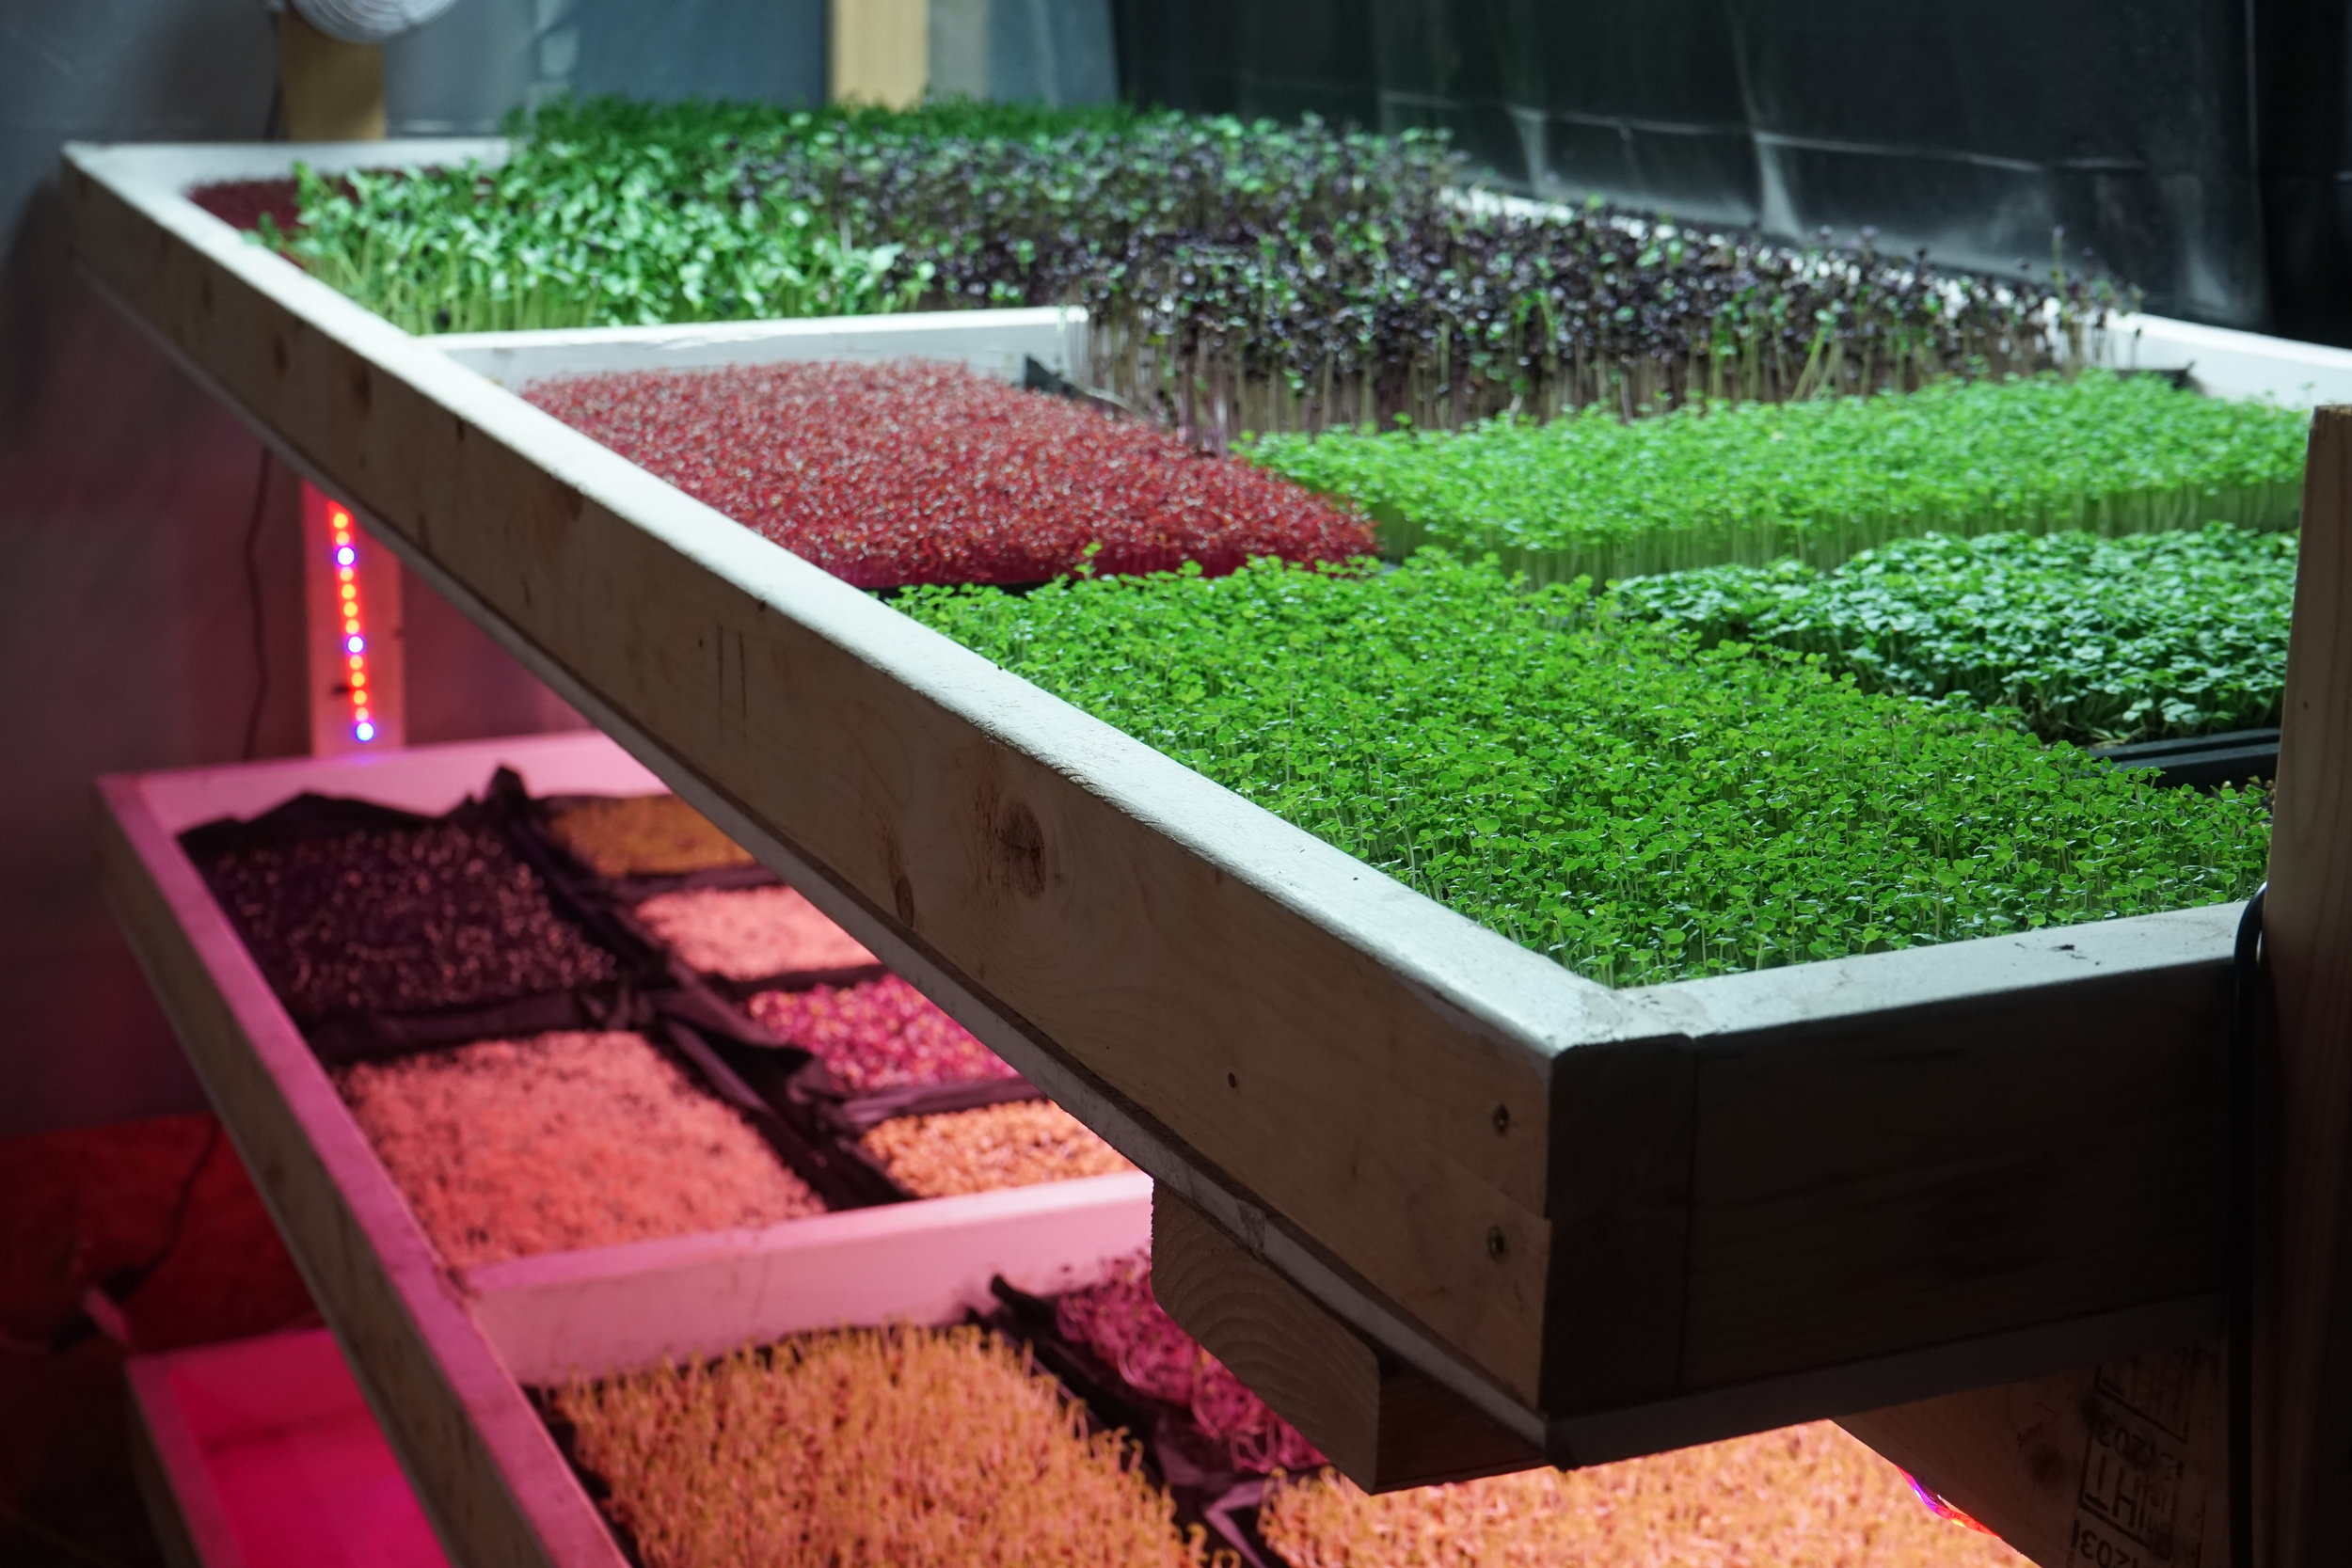 Lettuce Tree Farm's Microgreens